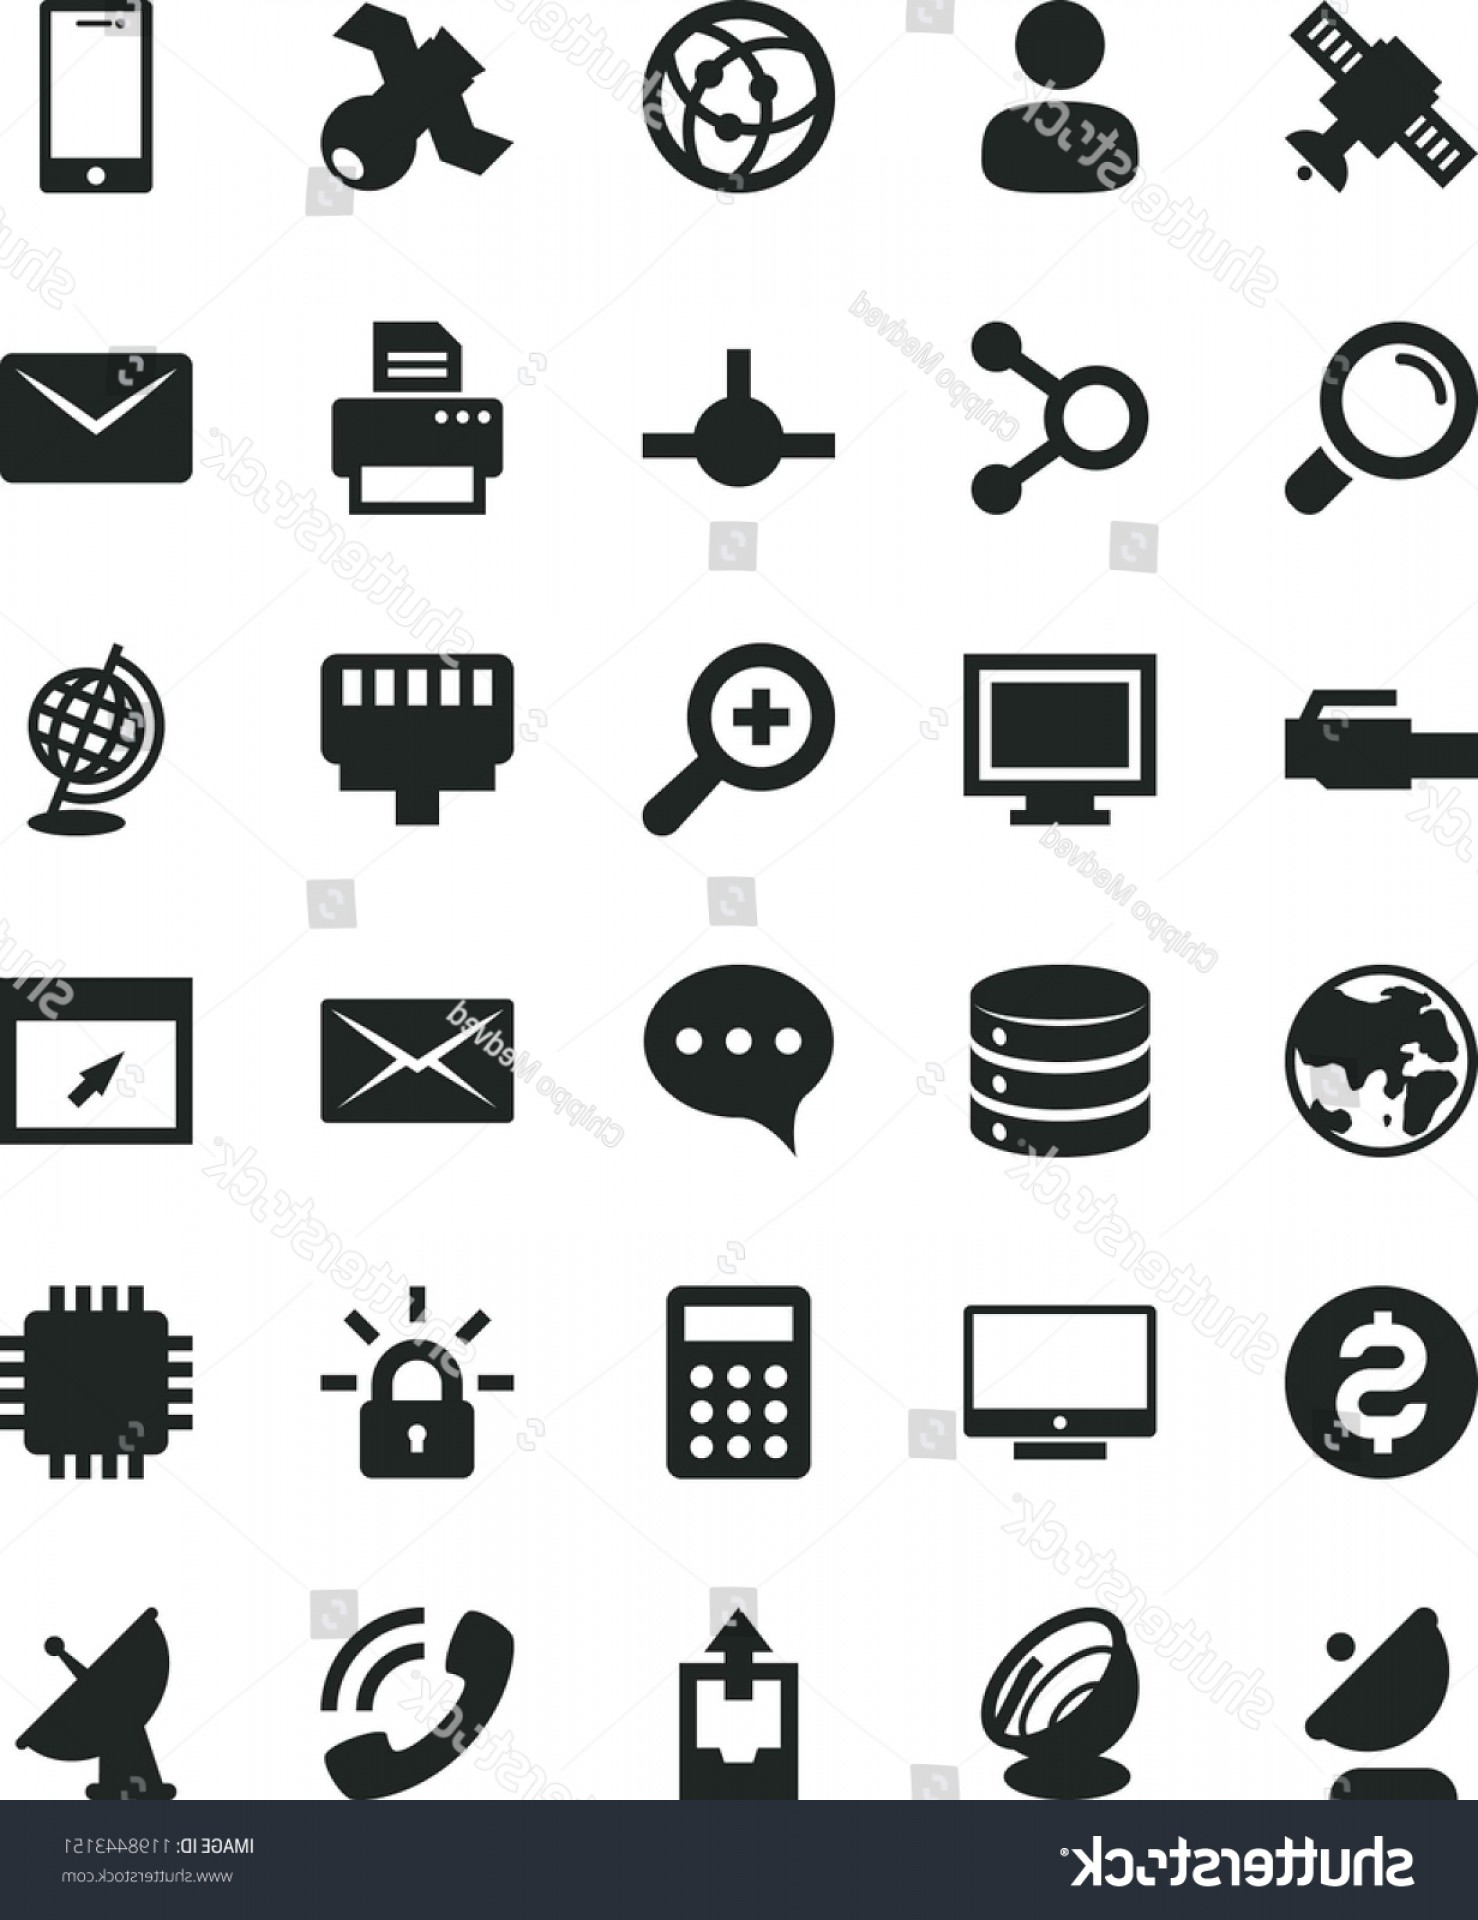 Windows 8 Phone Icon Vector: Solid Black Flat Icon Set Monitor